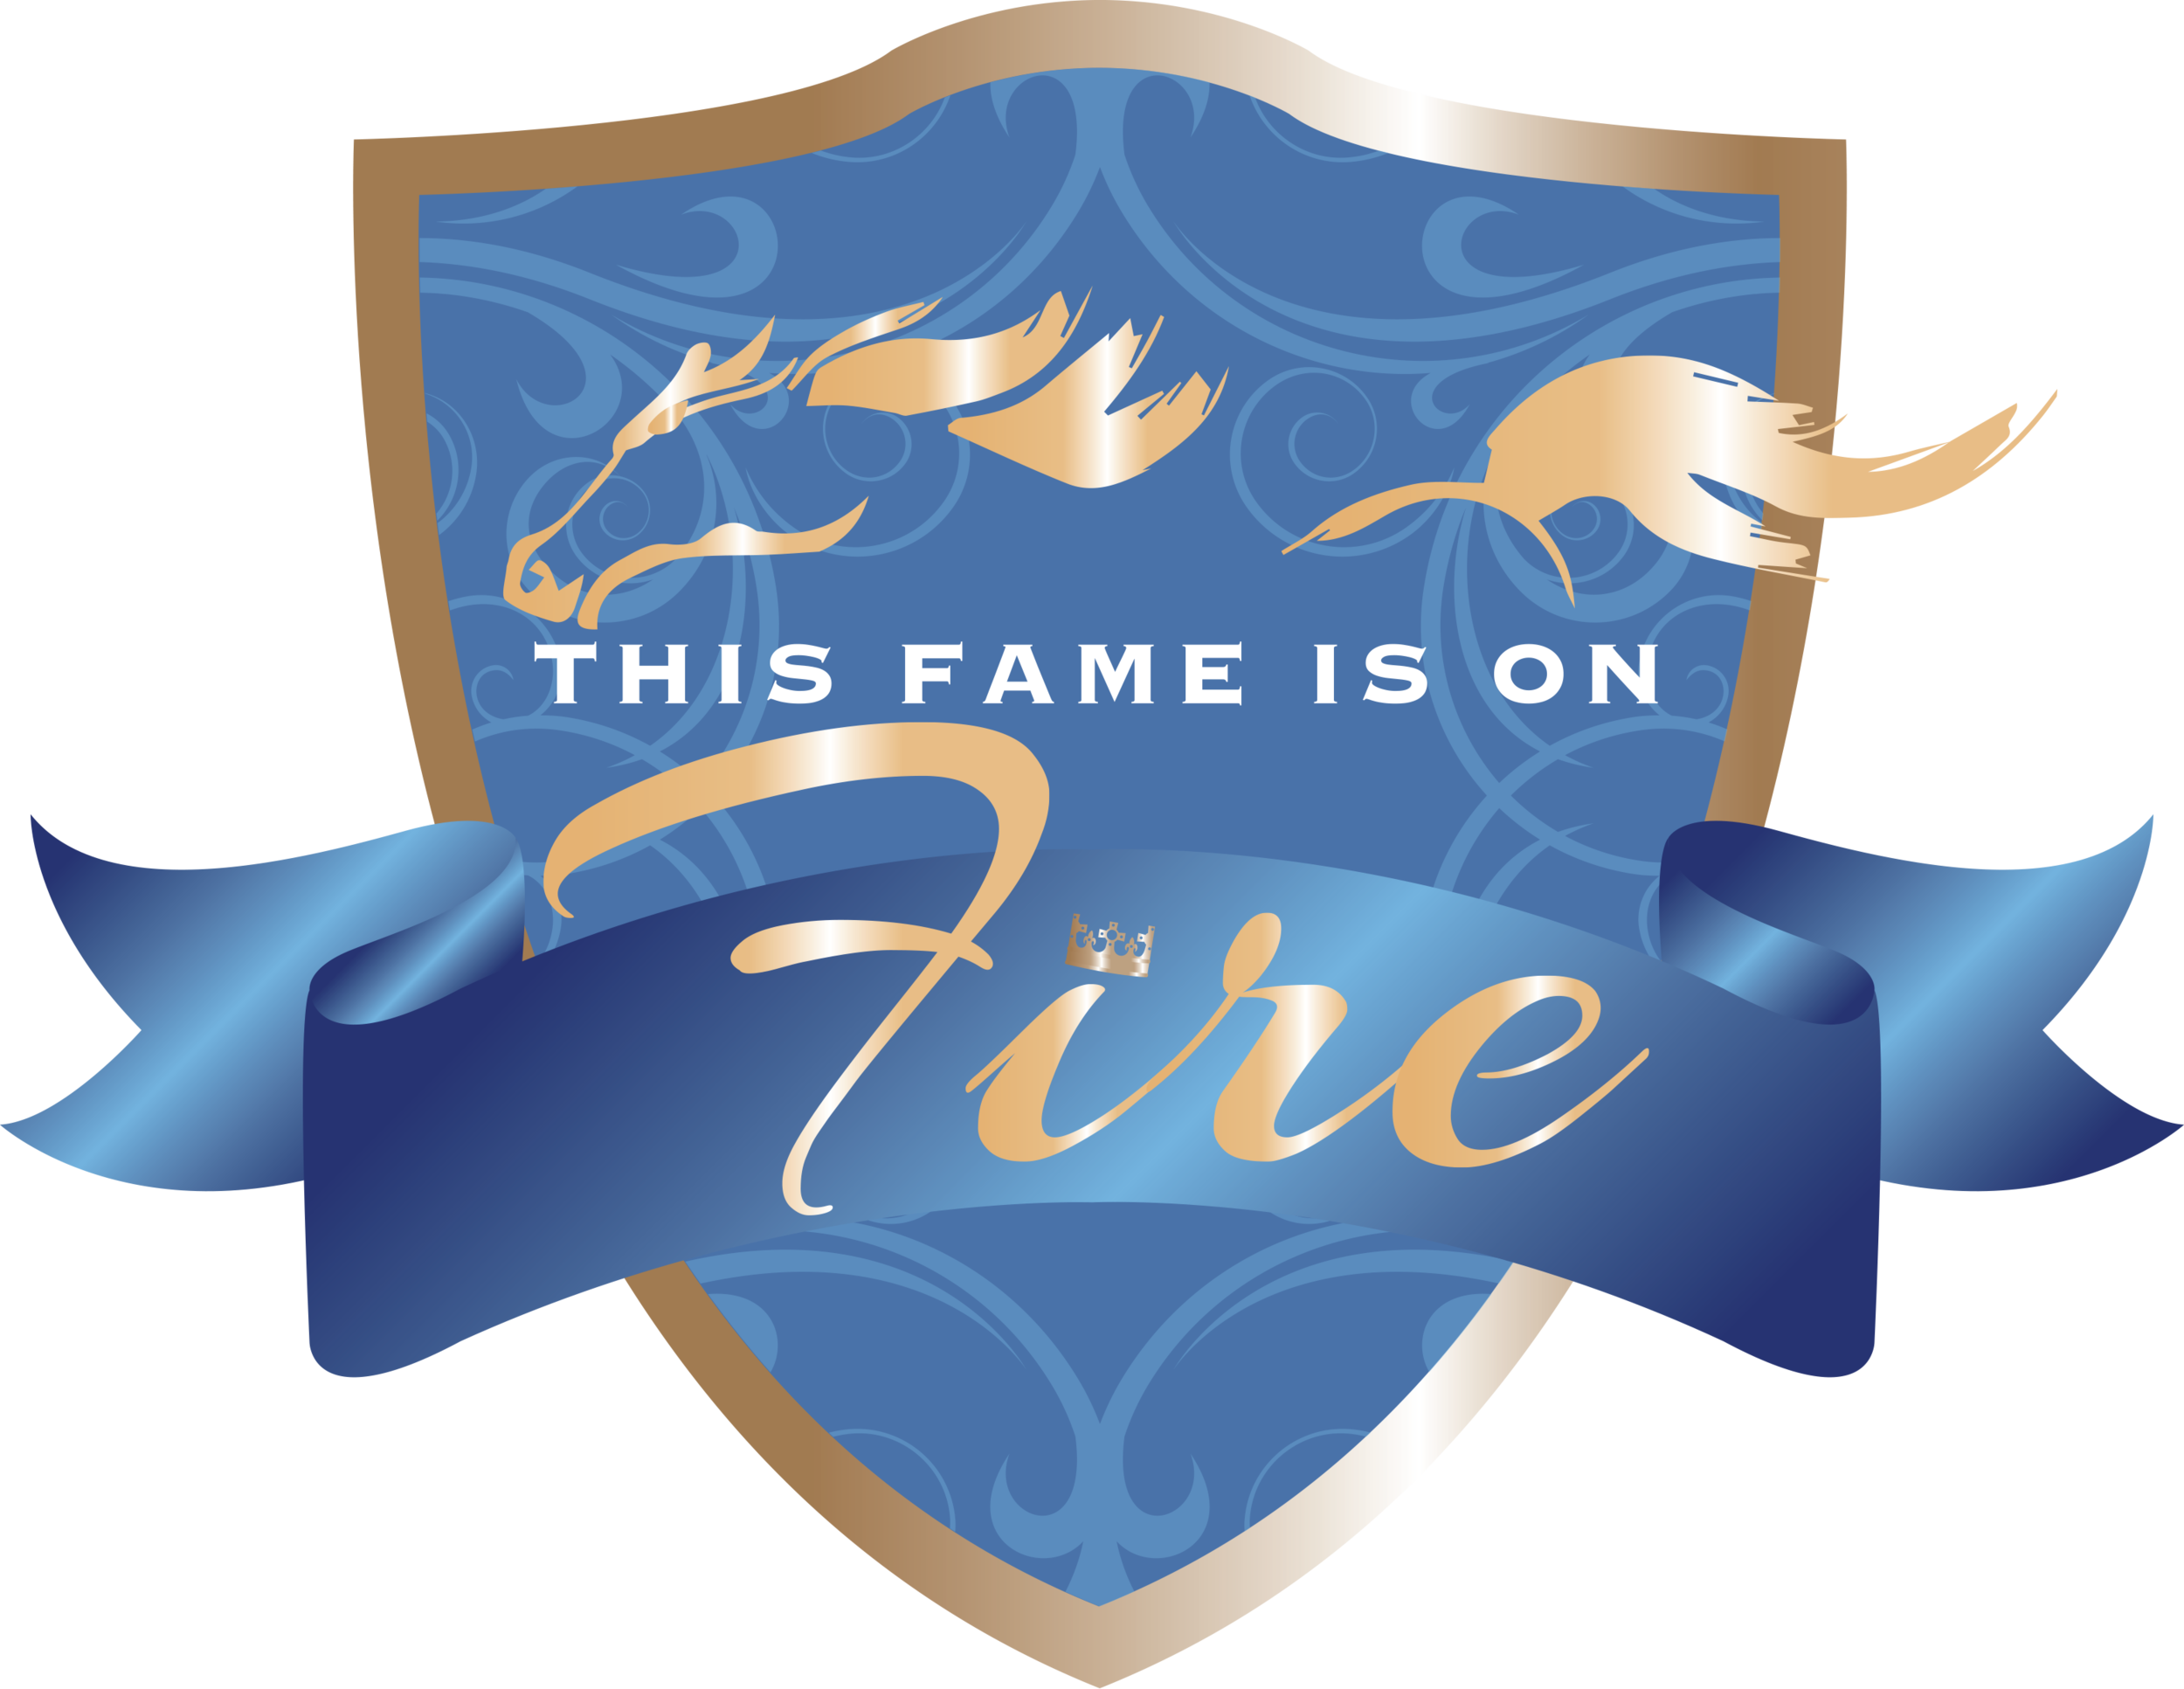 ThisFameIsOnFire_logo_final.png